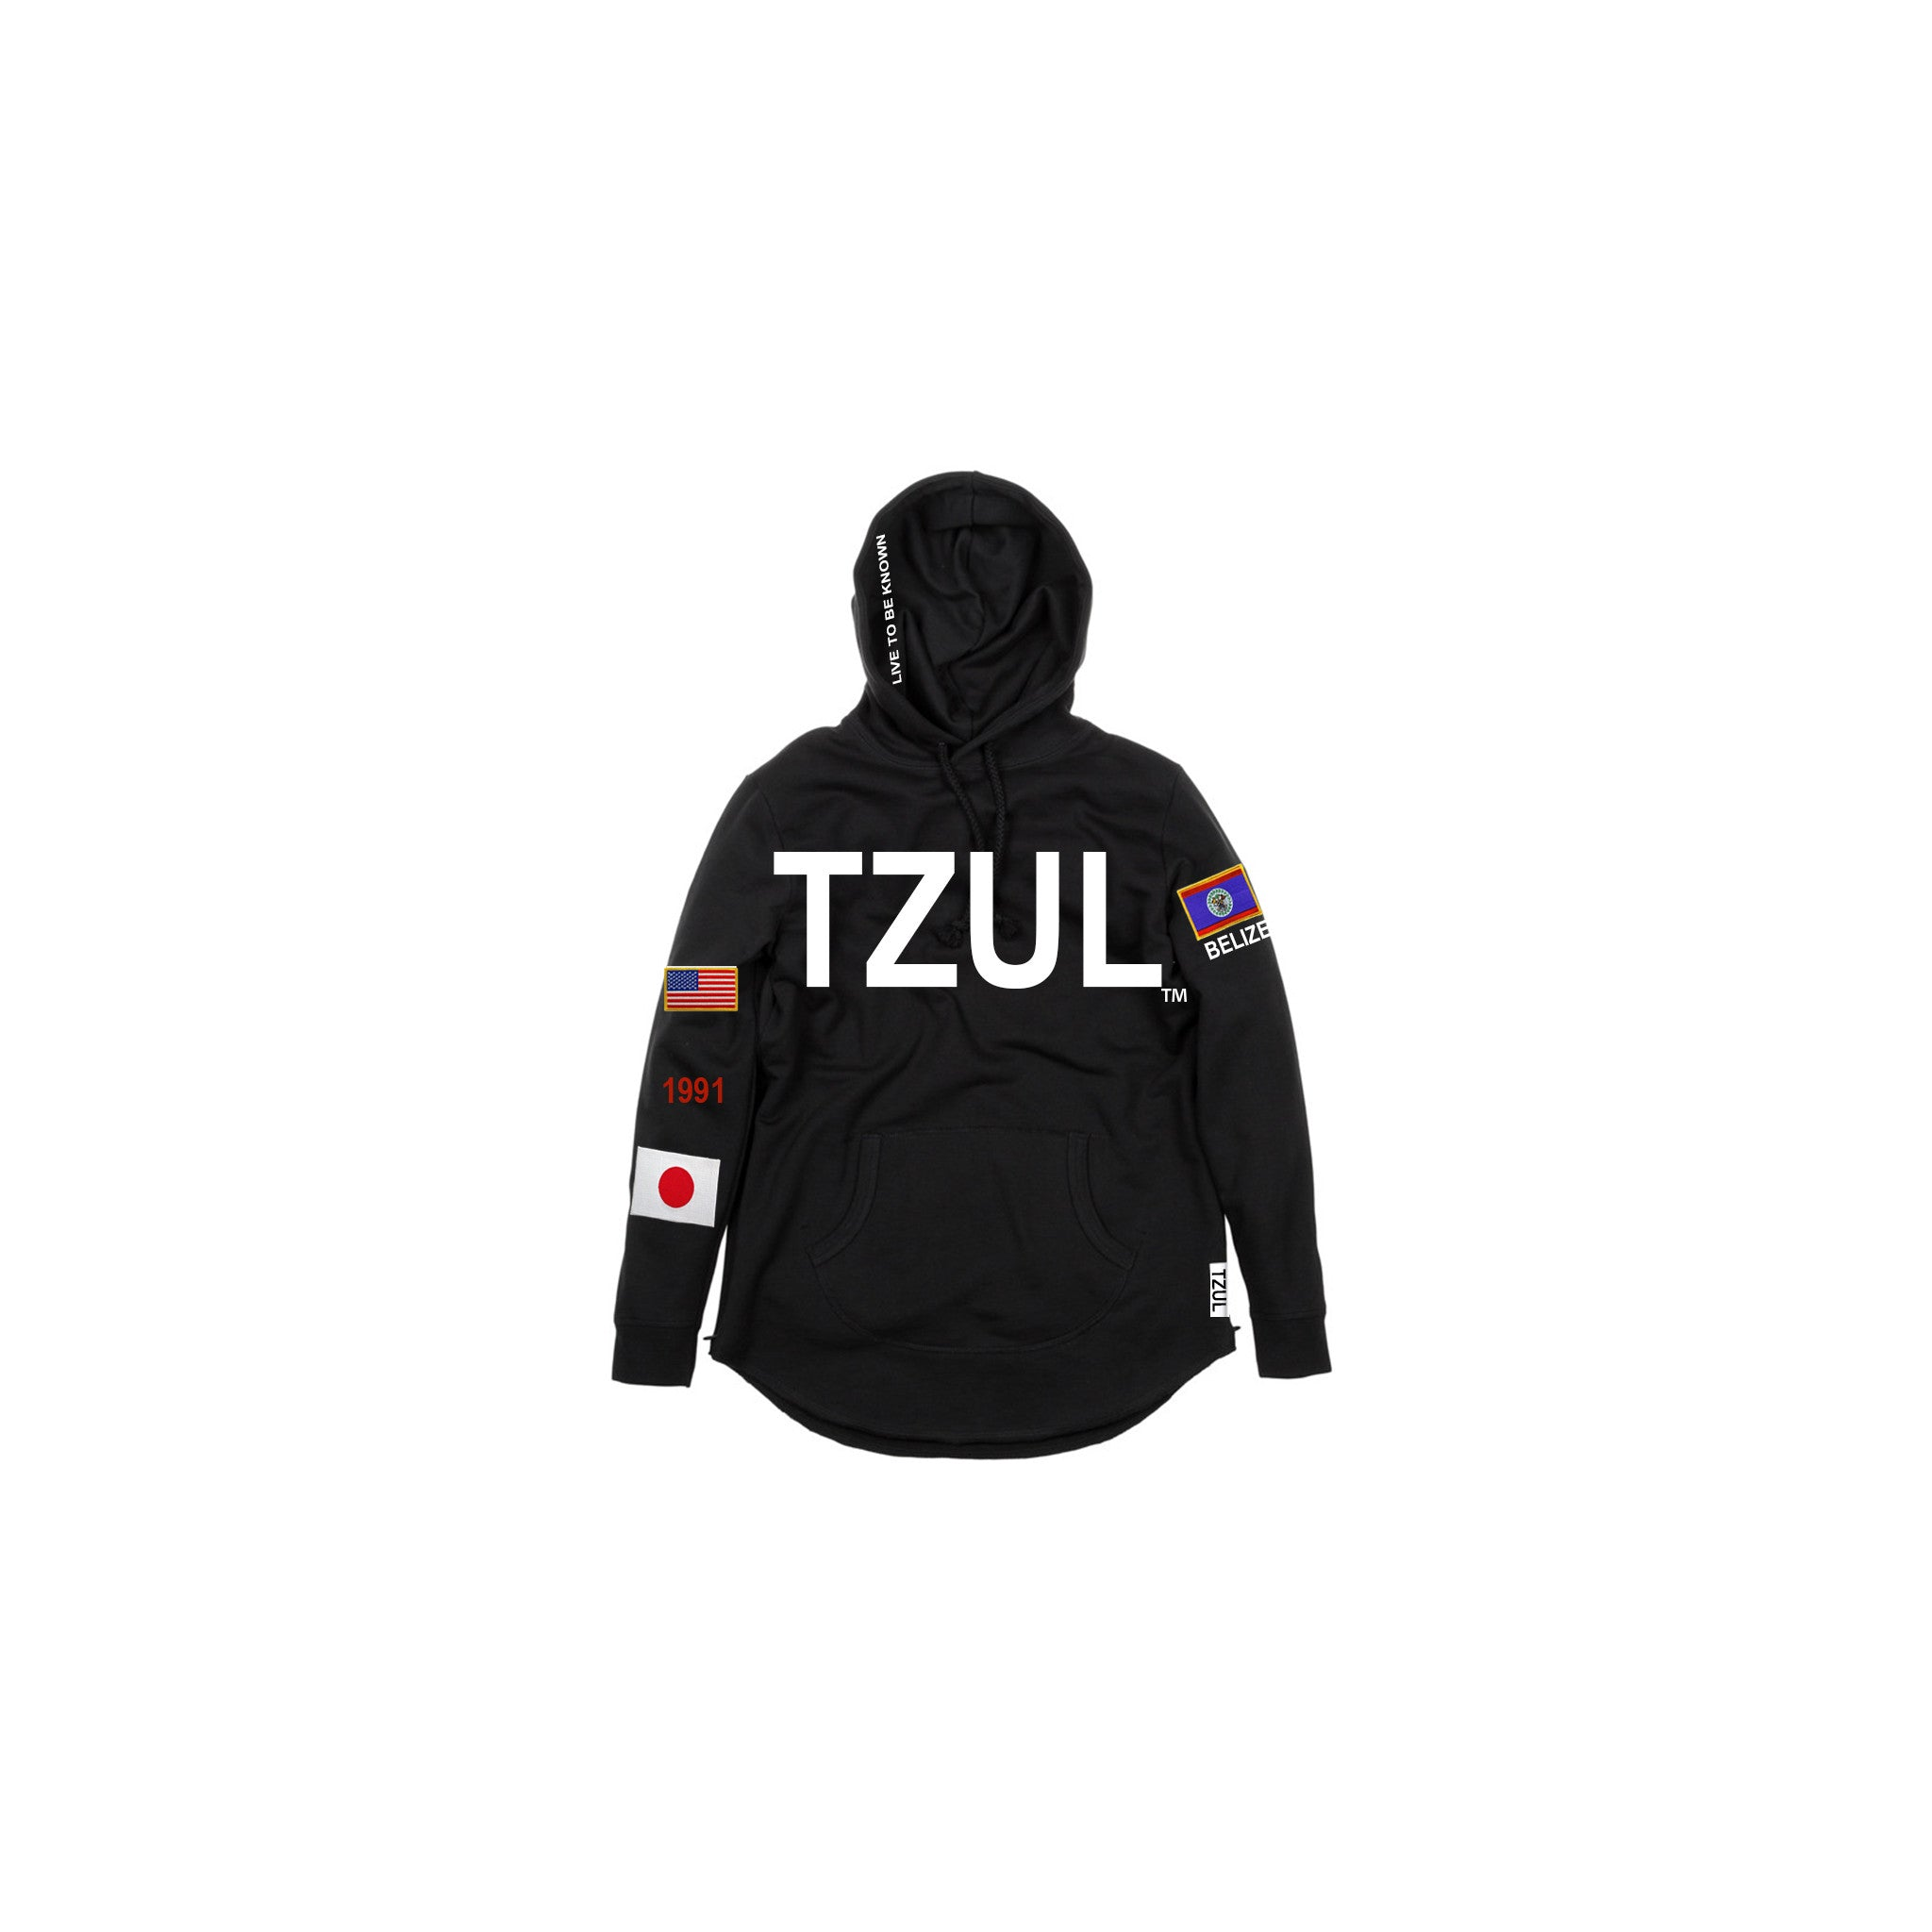 TZUL Embroidered Detail Hoodie